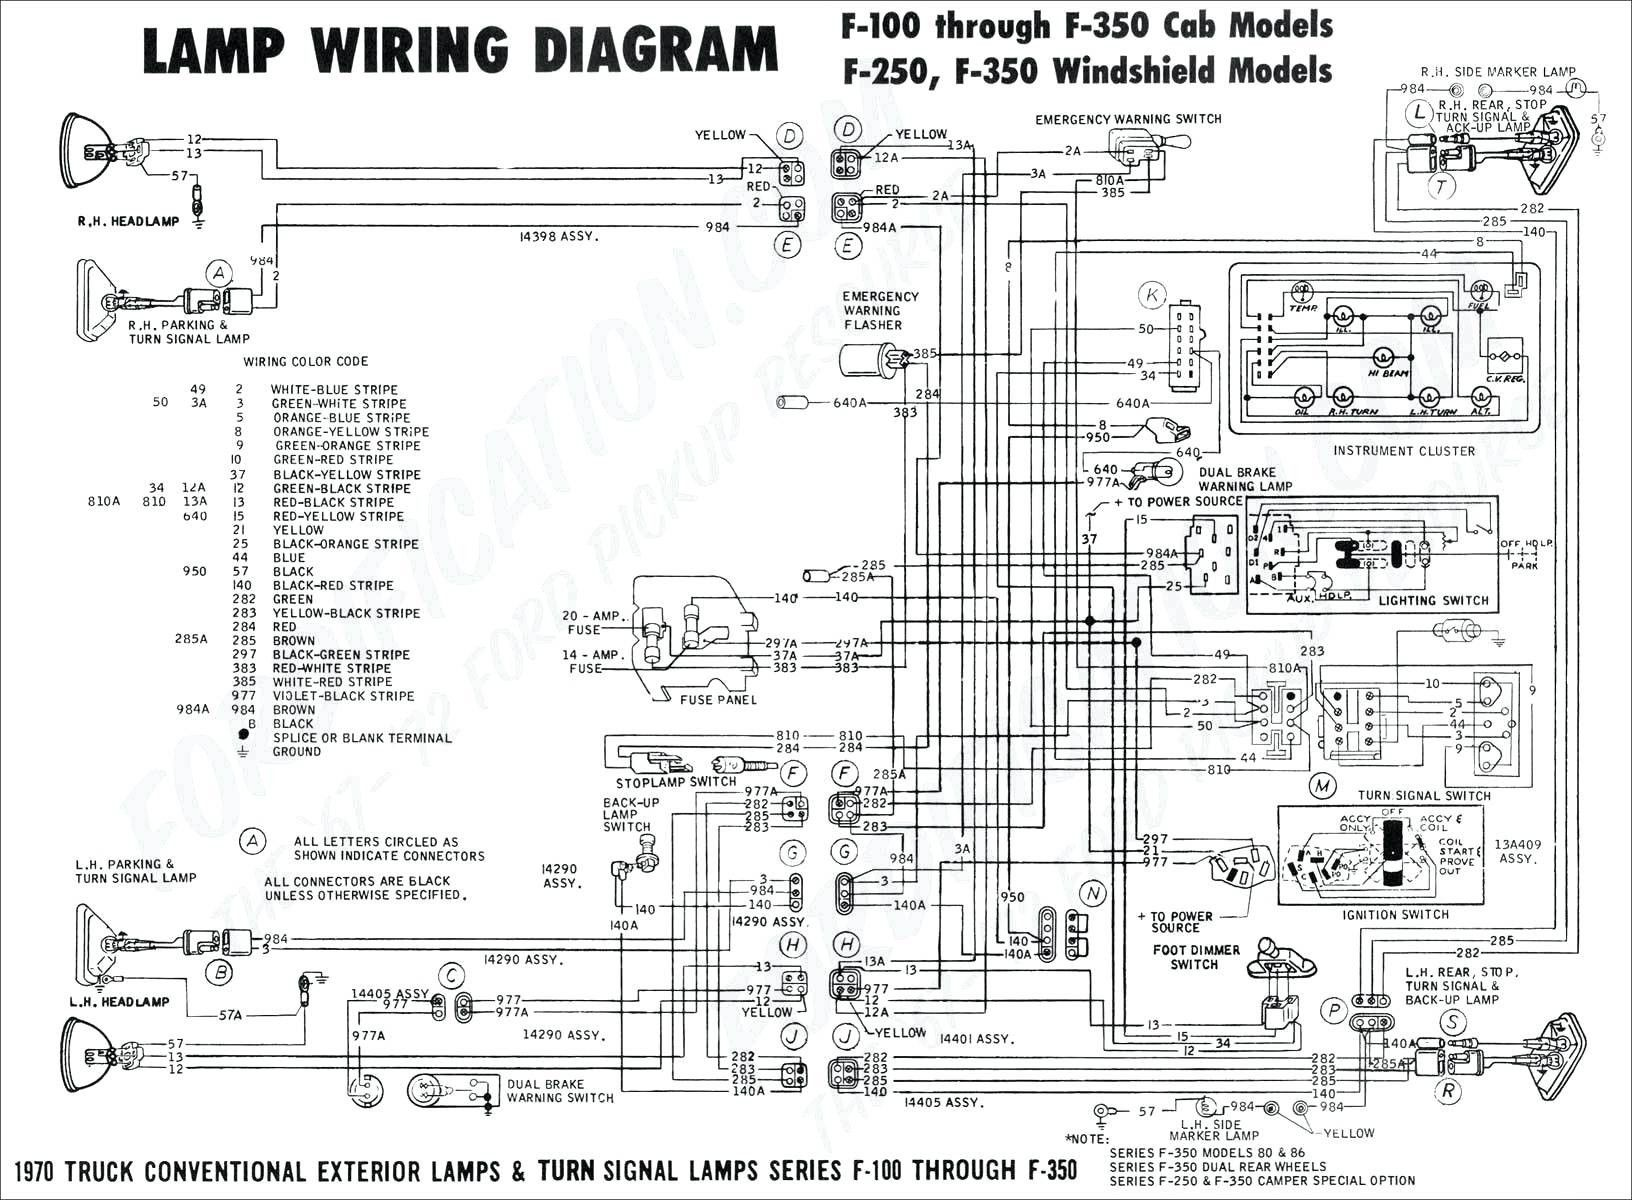 2004 chrysler sebring engine diagram | trailer wiring diagram, electrical  wiring diagram, diagram  pinterest